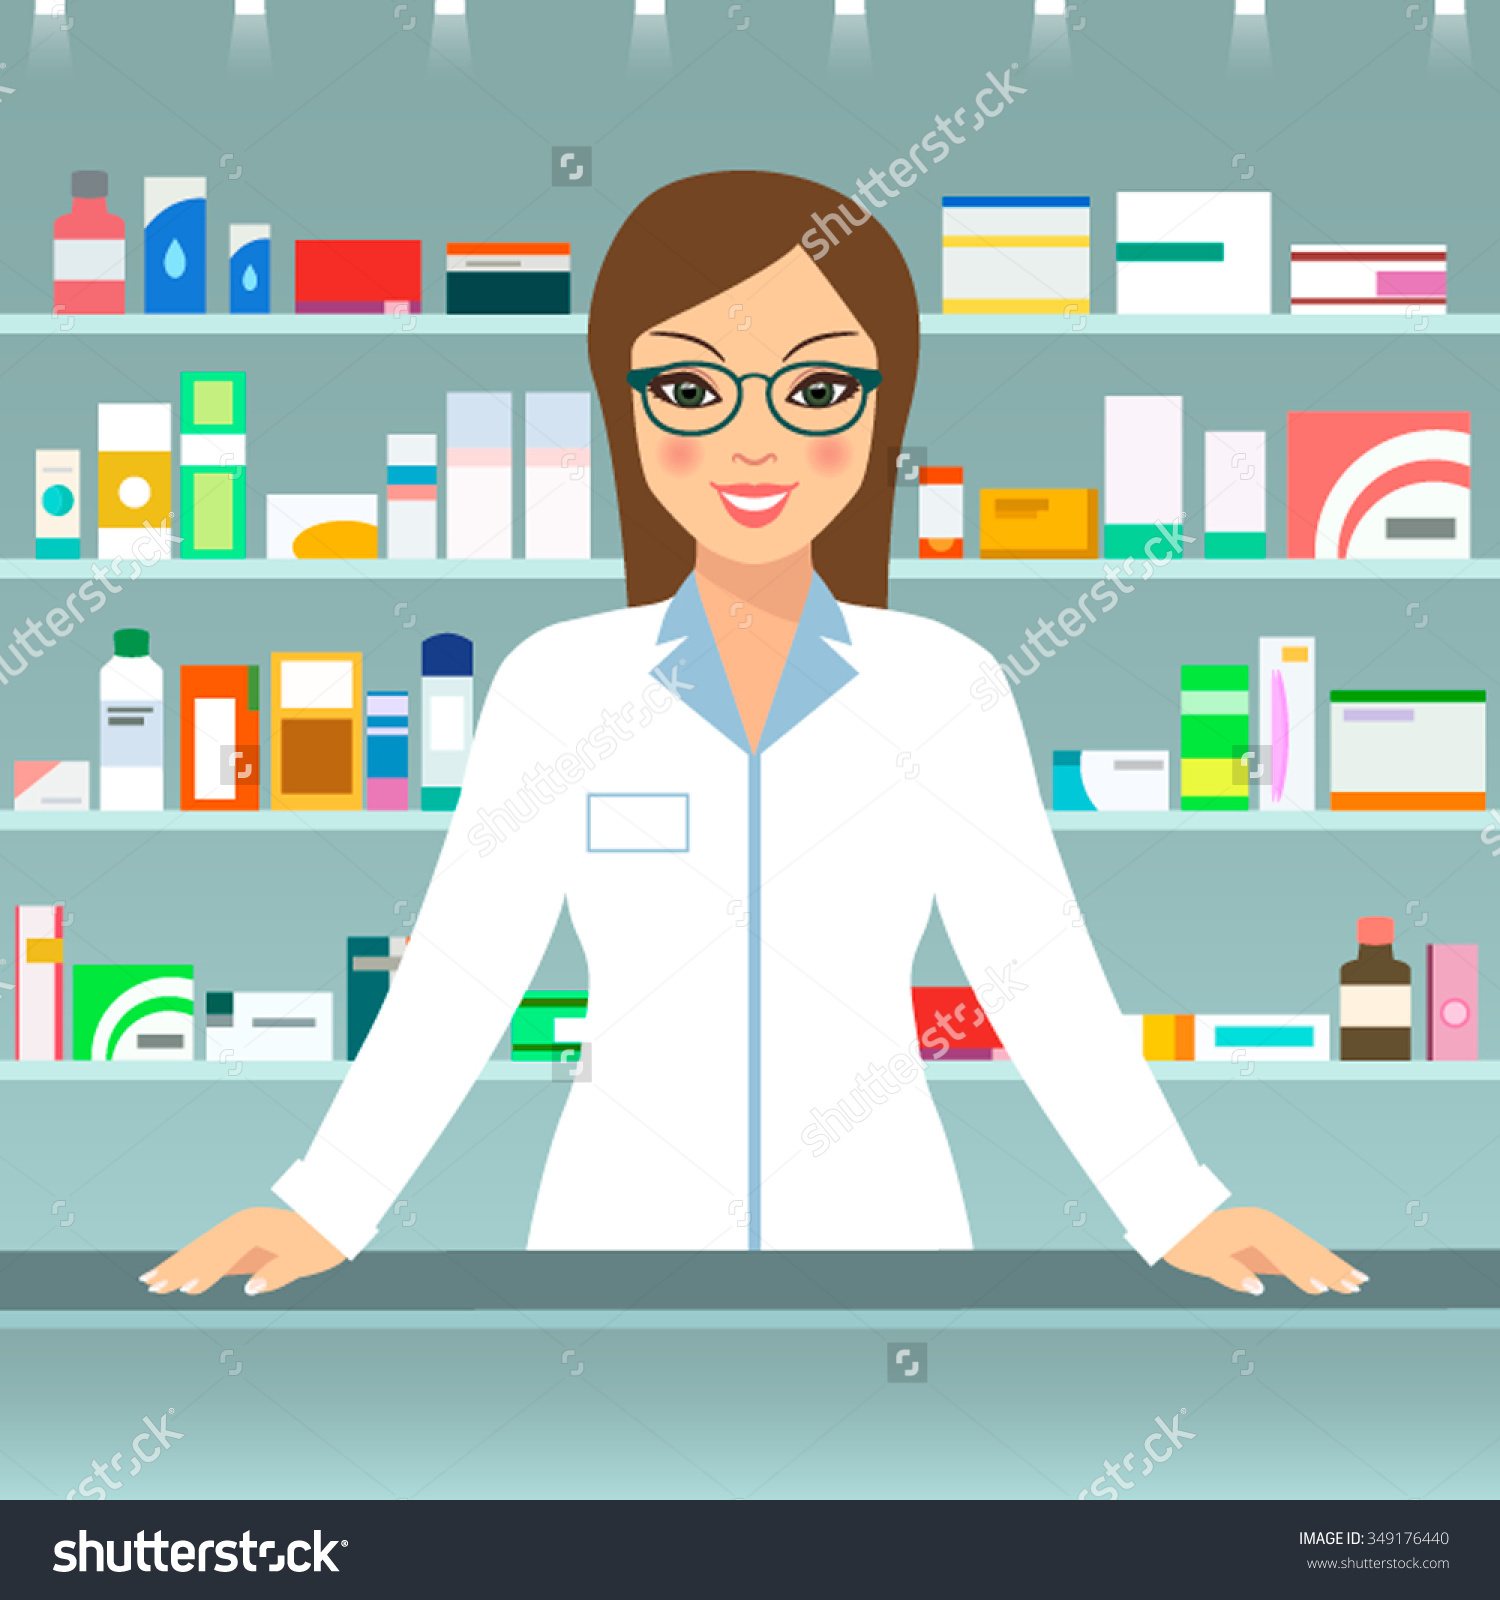 Modern Illustration Smiling Female Pharmacist Counter Stock Vector.